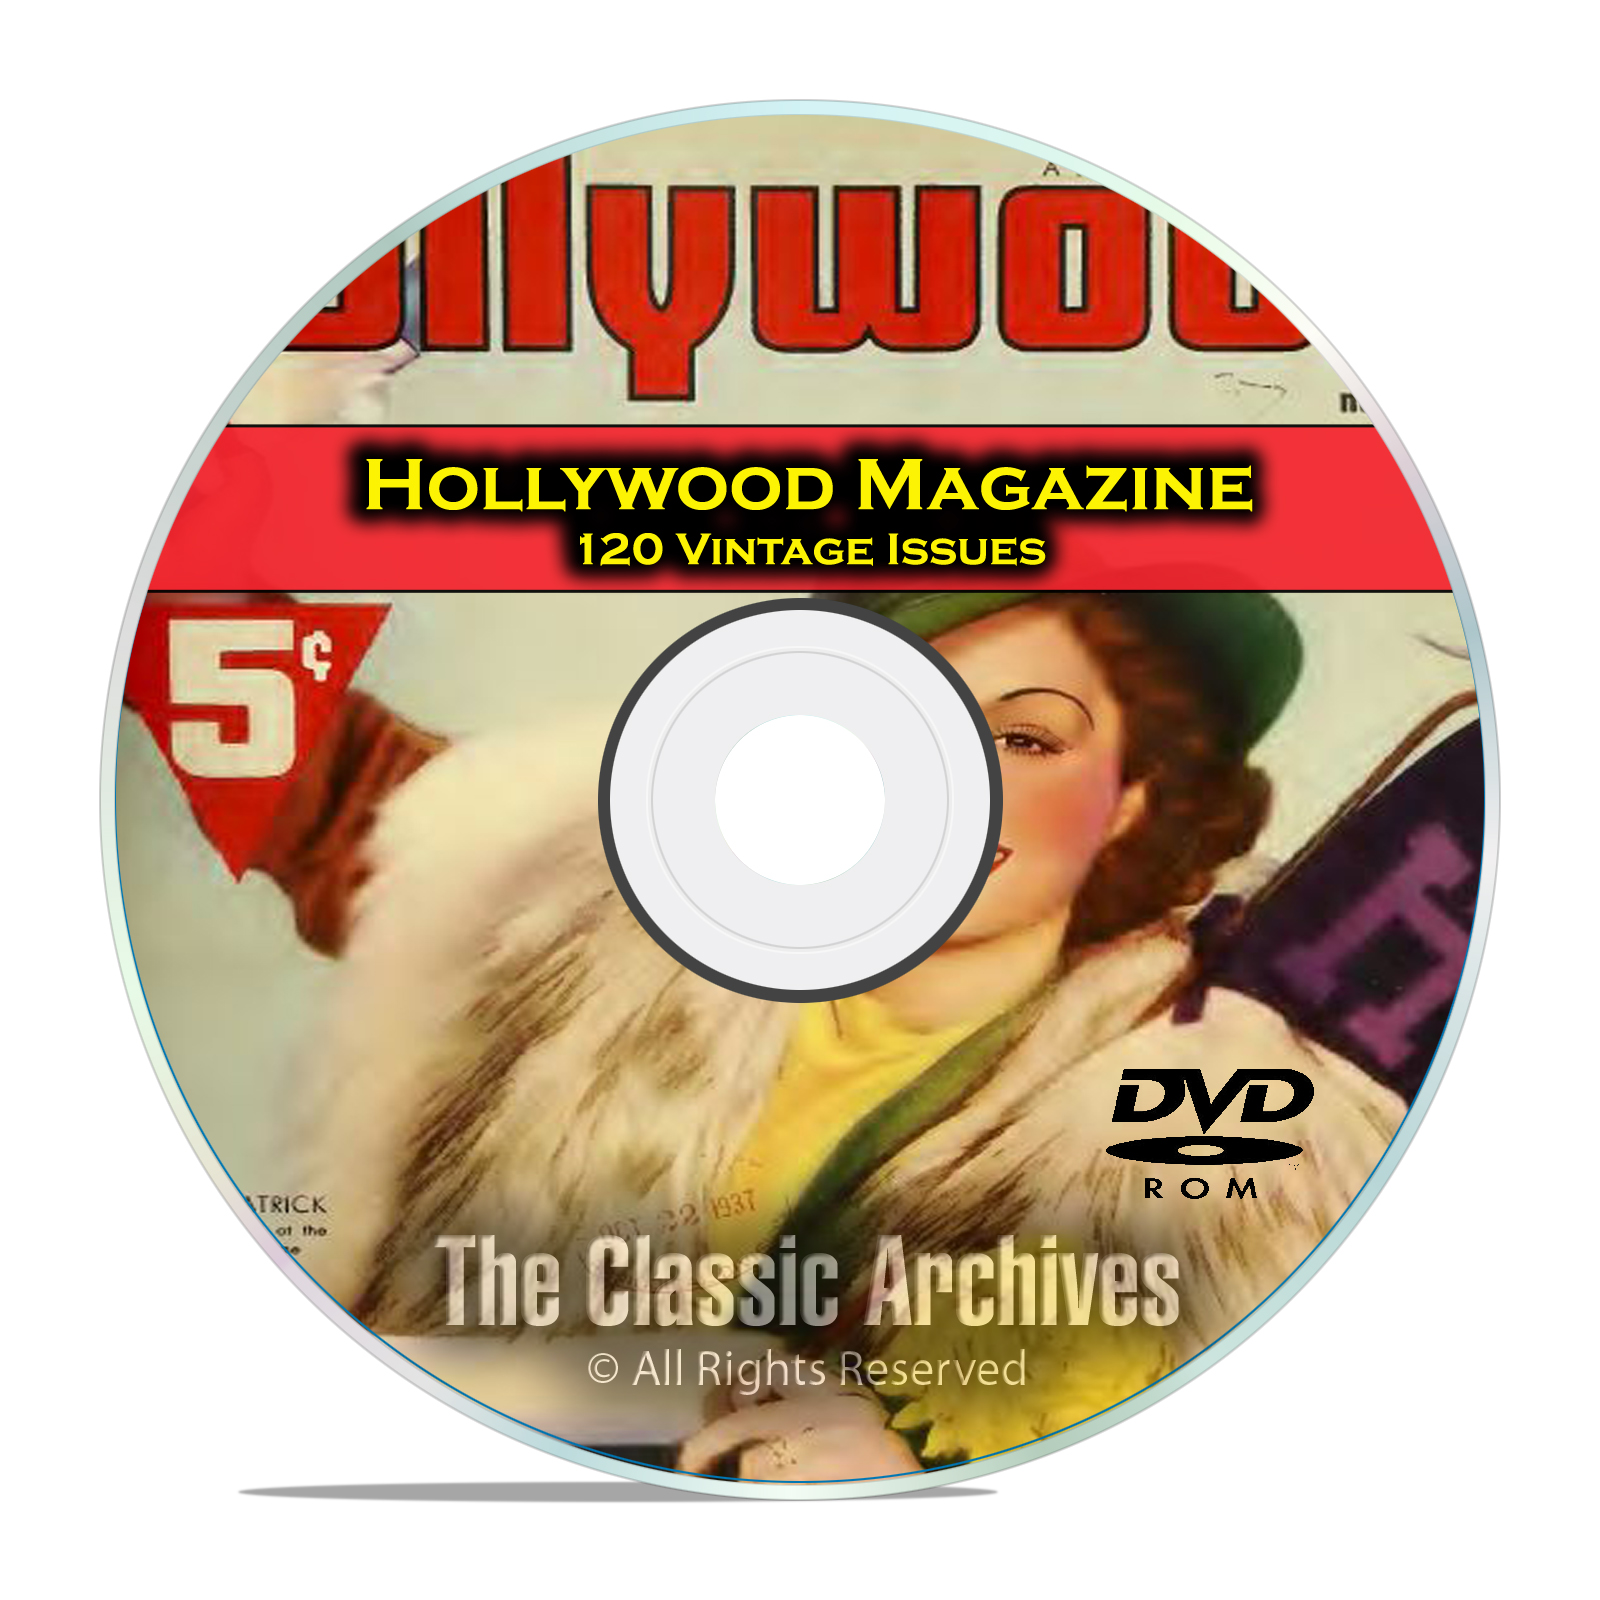 Hollywood Magazine, 120 Vintage issues, Golden Movie Age, 1934-1963, DVD